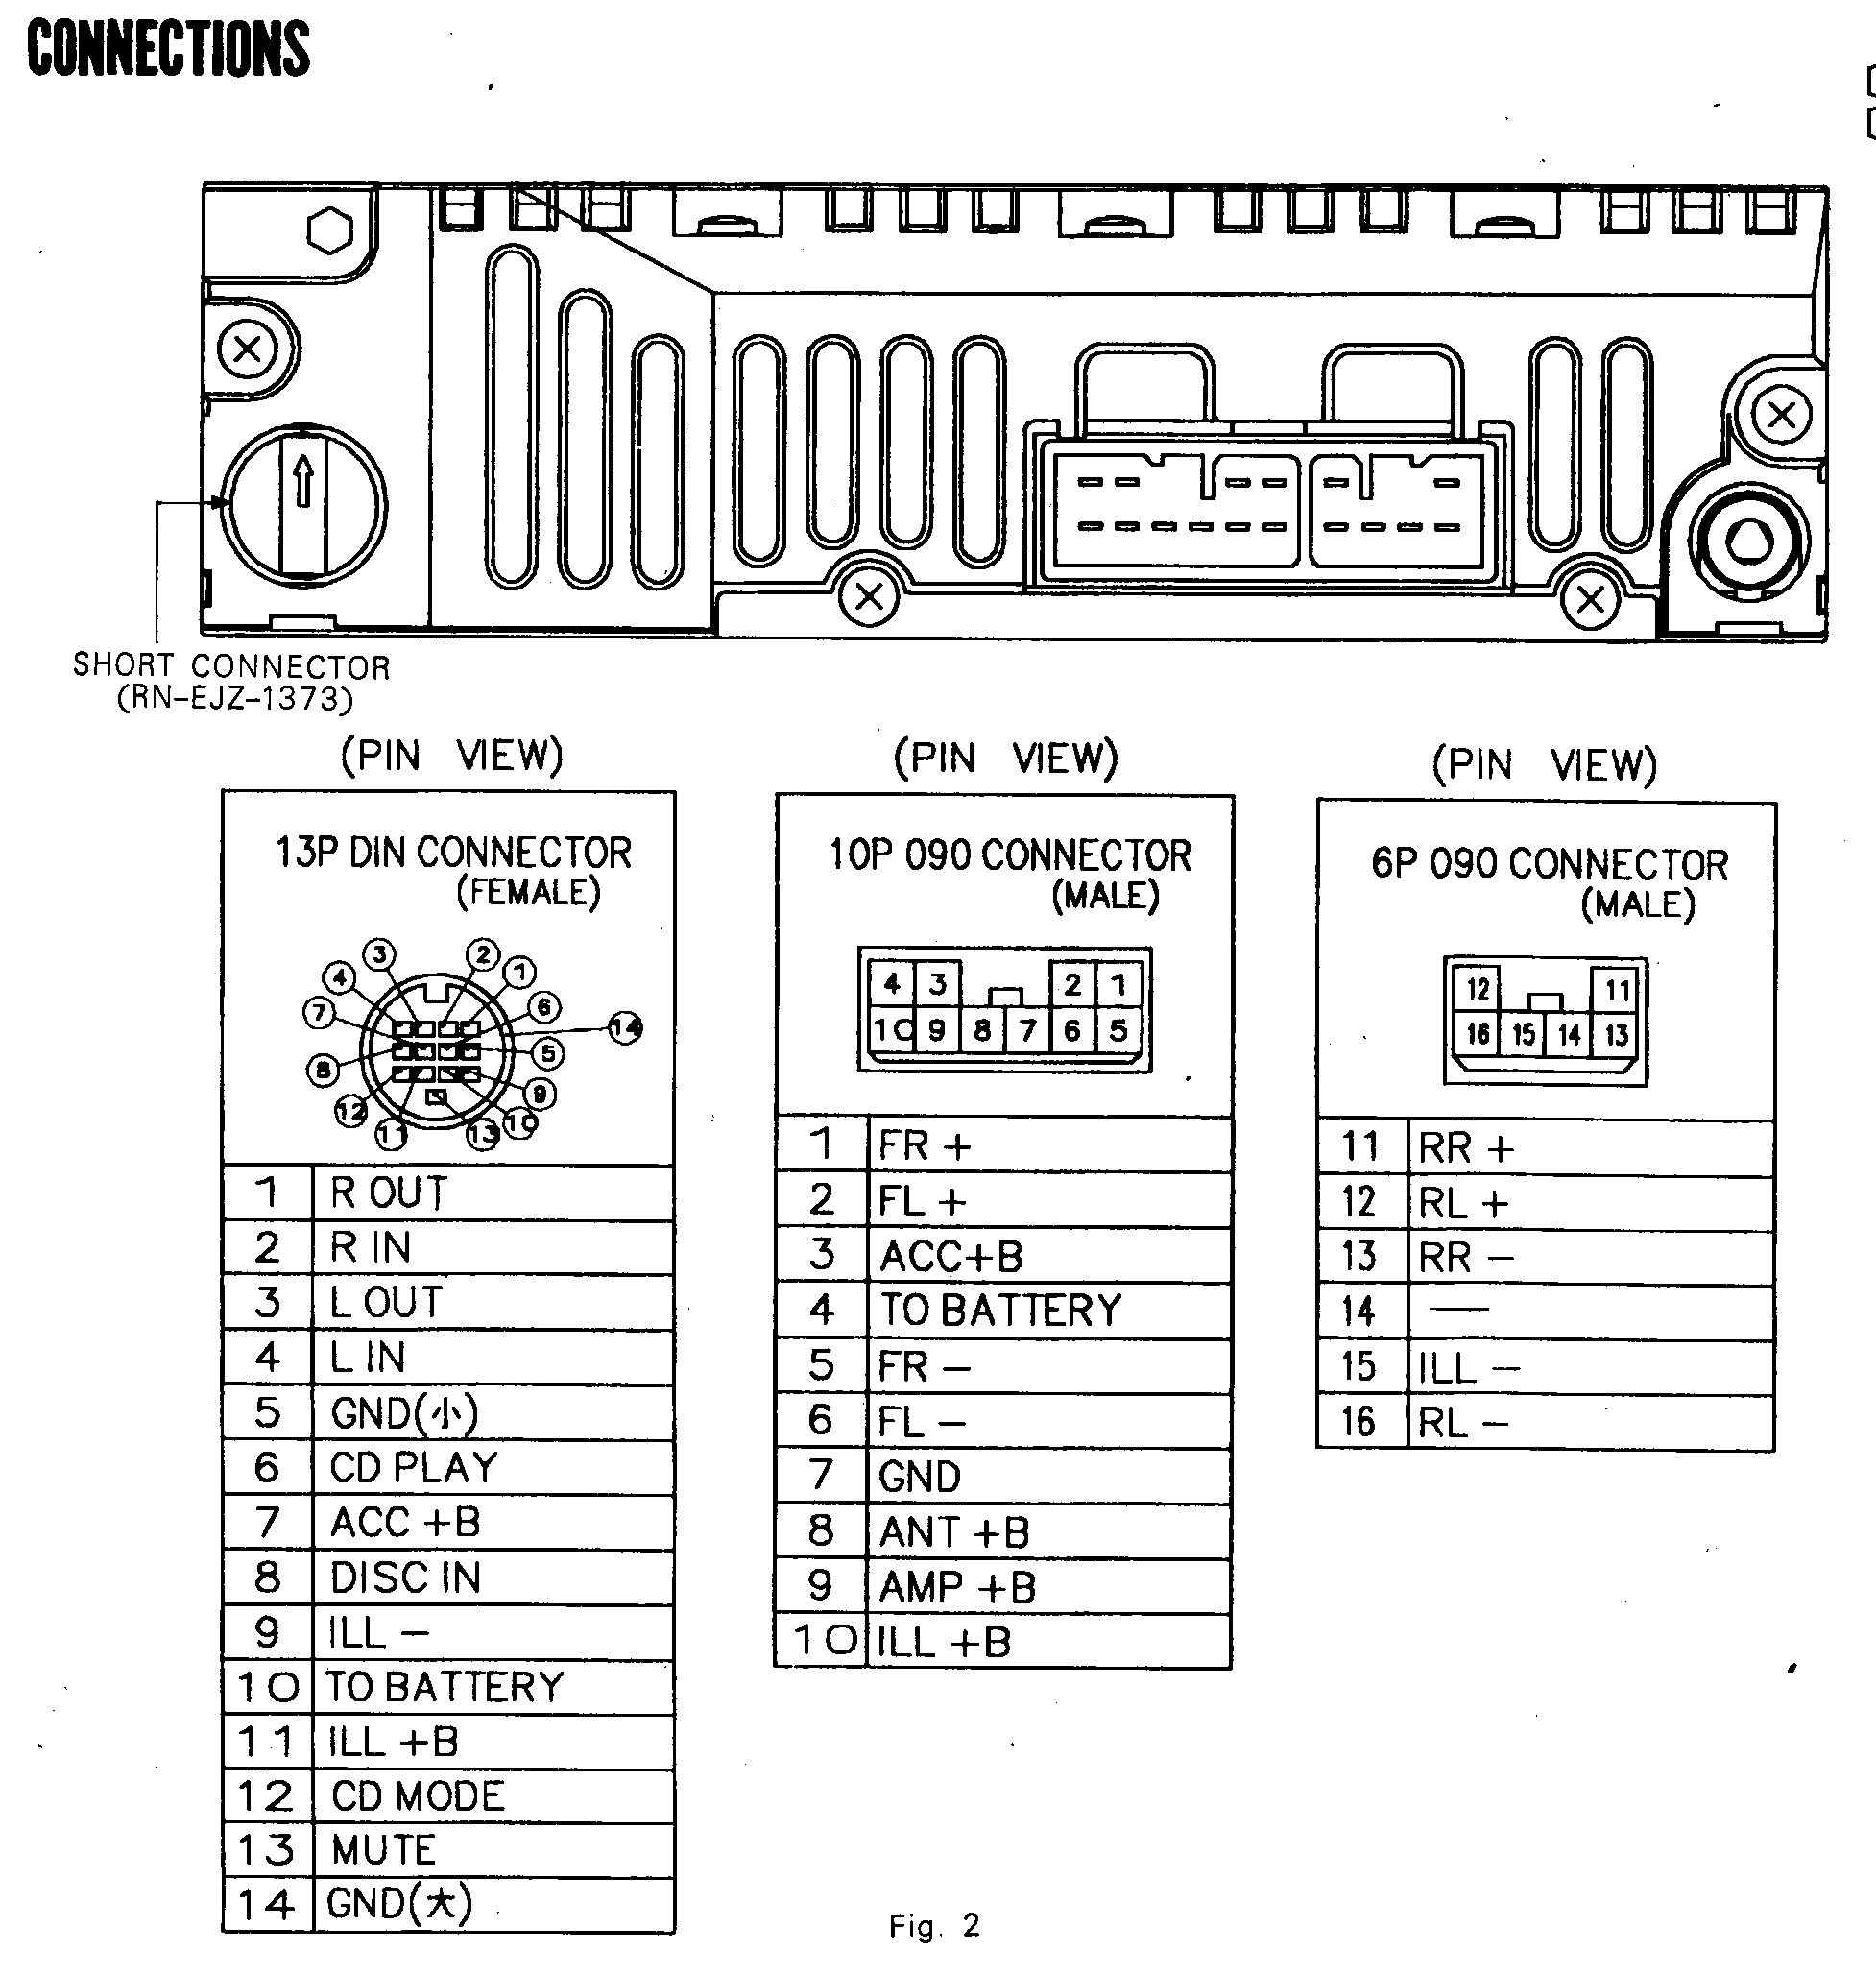 WireHarnessToy121003 car audio wire diagram codes toyota factory car stereo repair toyota radio wiring diagram at pacquiaovsvargaslive.co